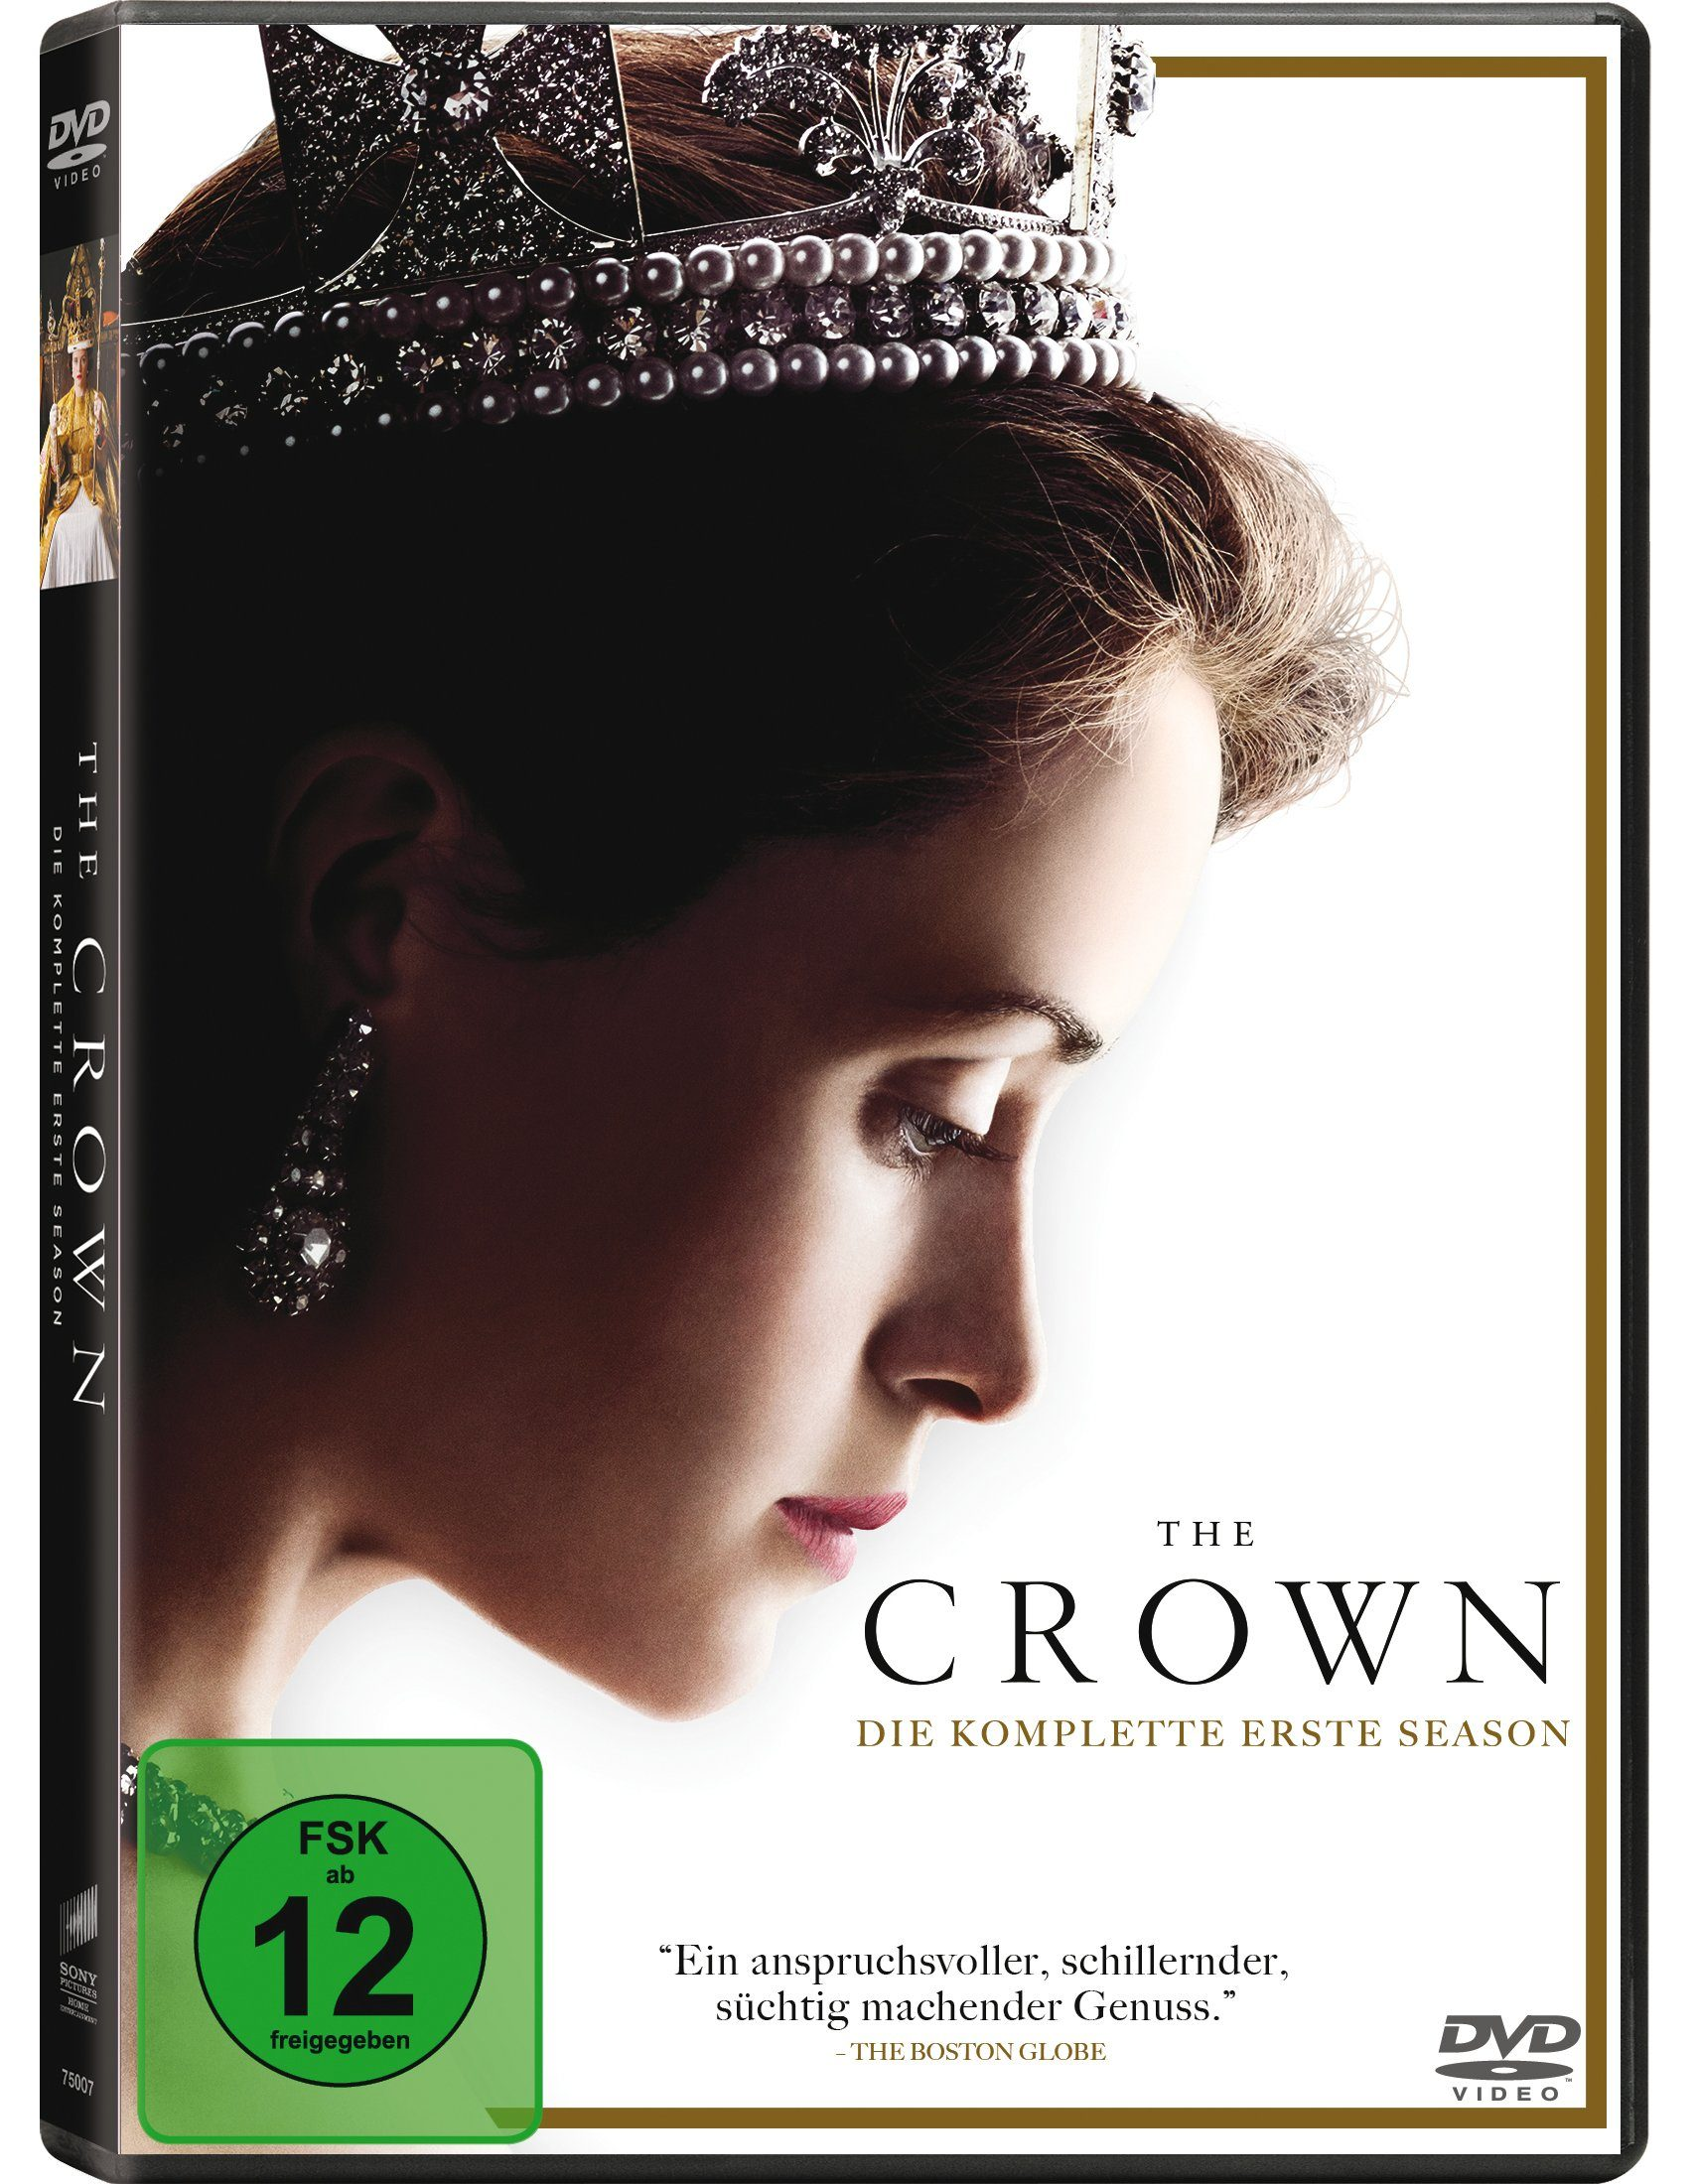 Sony Pictures DVD »The Crown - Die komplette erste Season«